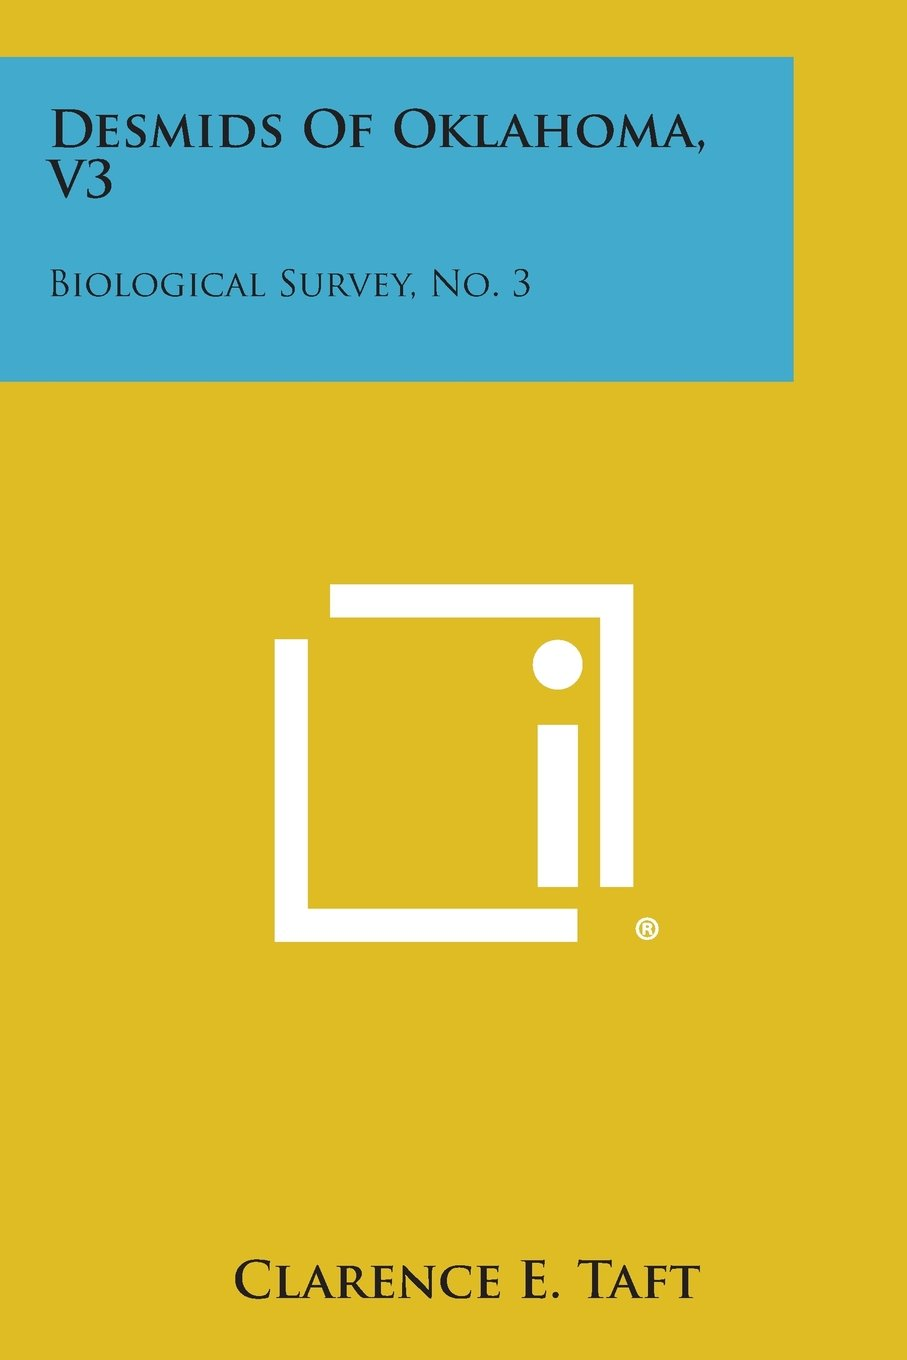 Desmids of Oklahoma, V3: Biological Survey, No. 3 PDF